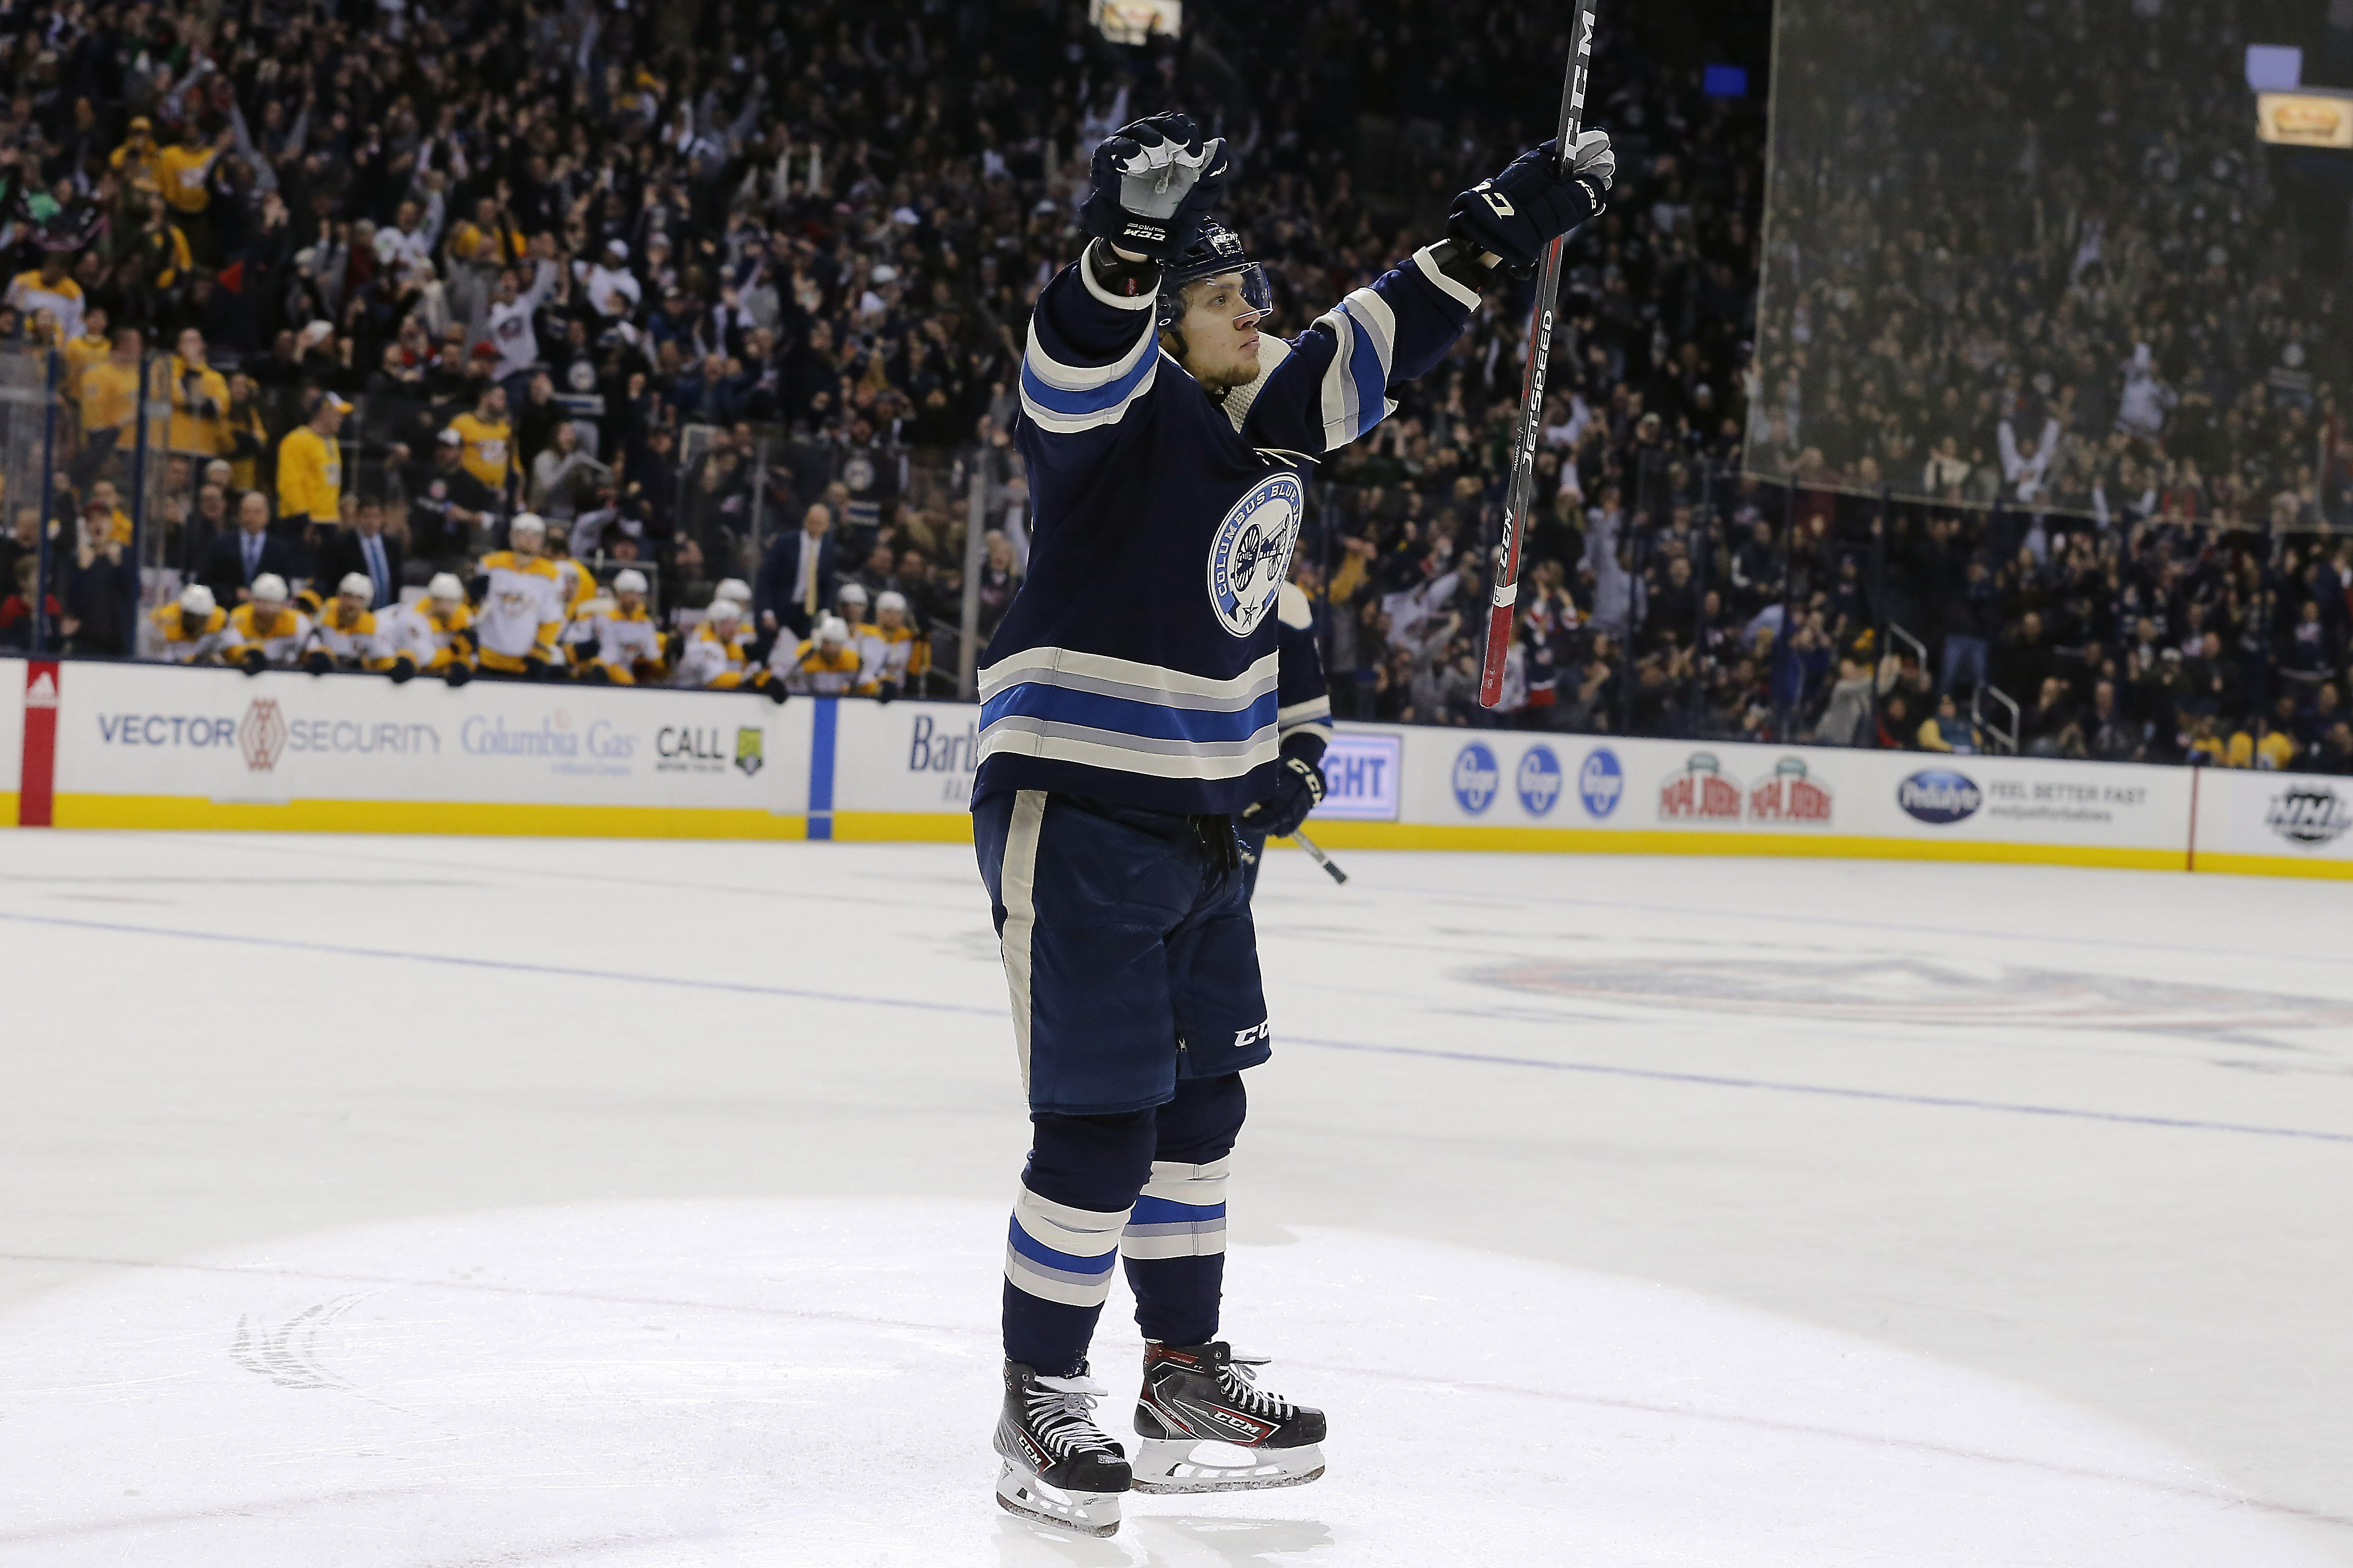 Jan 10, 2019; Columbus, OH, USA; Columbus Blue Jackets left wing Artemi Panarin (9) celebrates the game winner during overtime against the Nashville Predators at Nationwide Arena. Mandatory Credit: Russell LaBounty-USA TODAY Sports